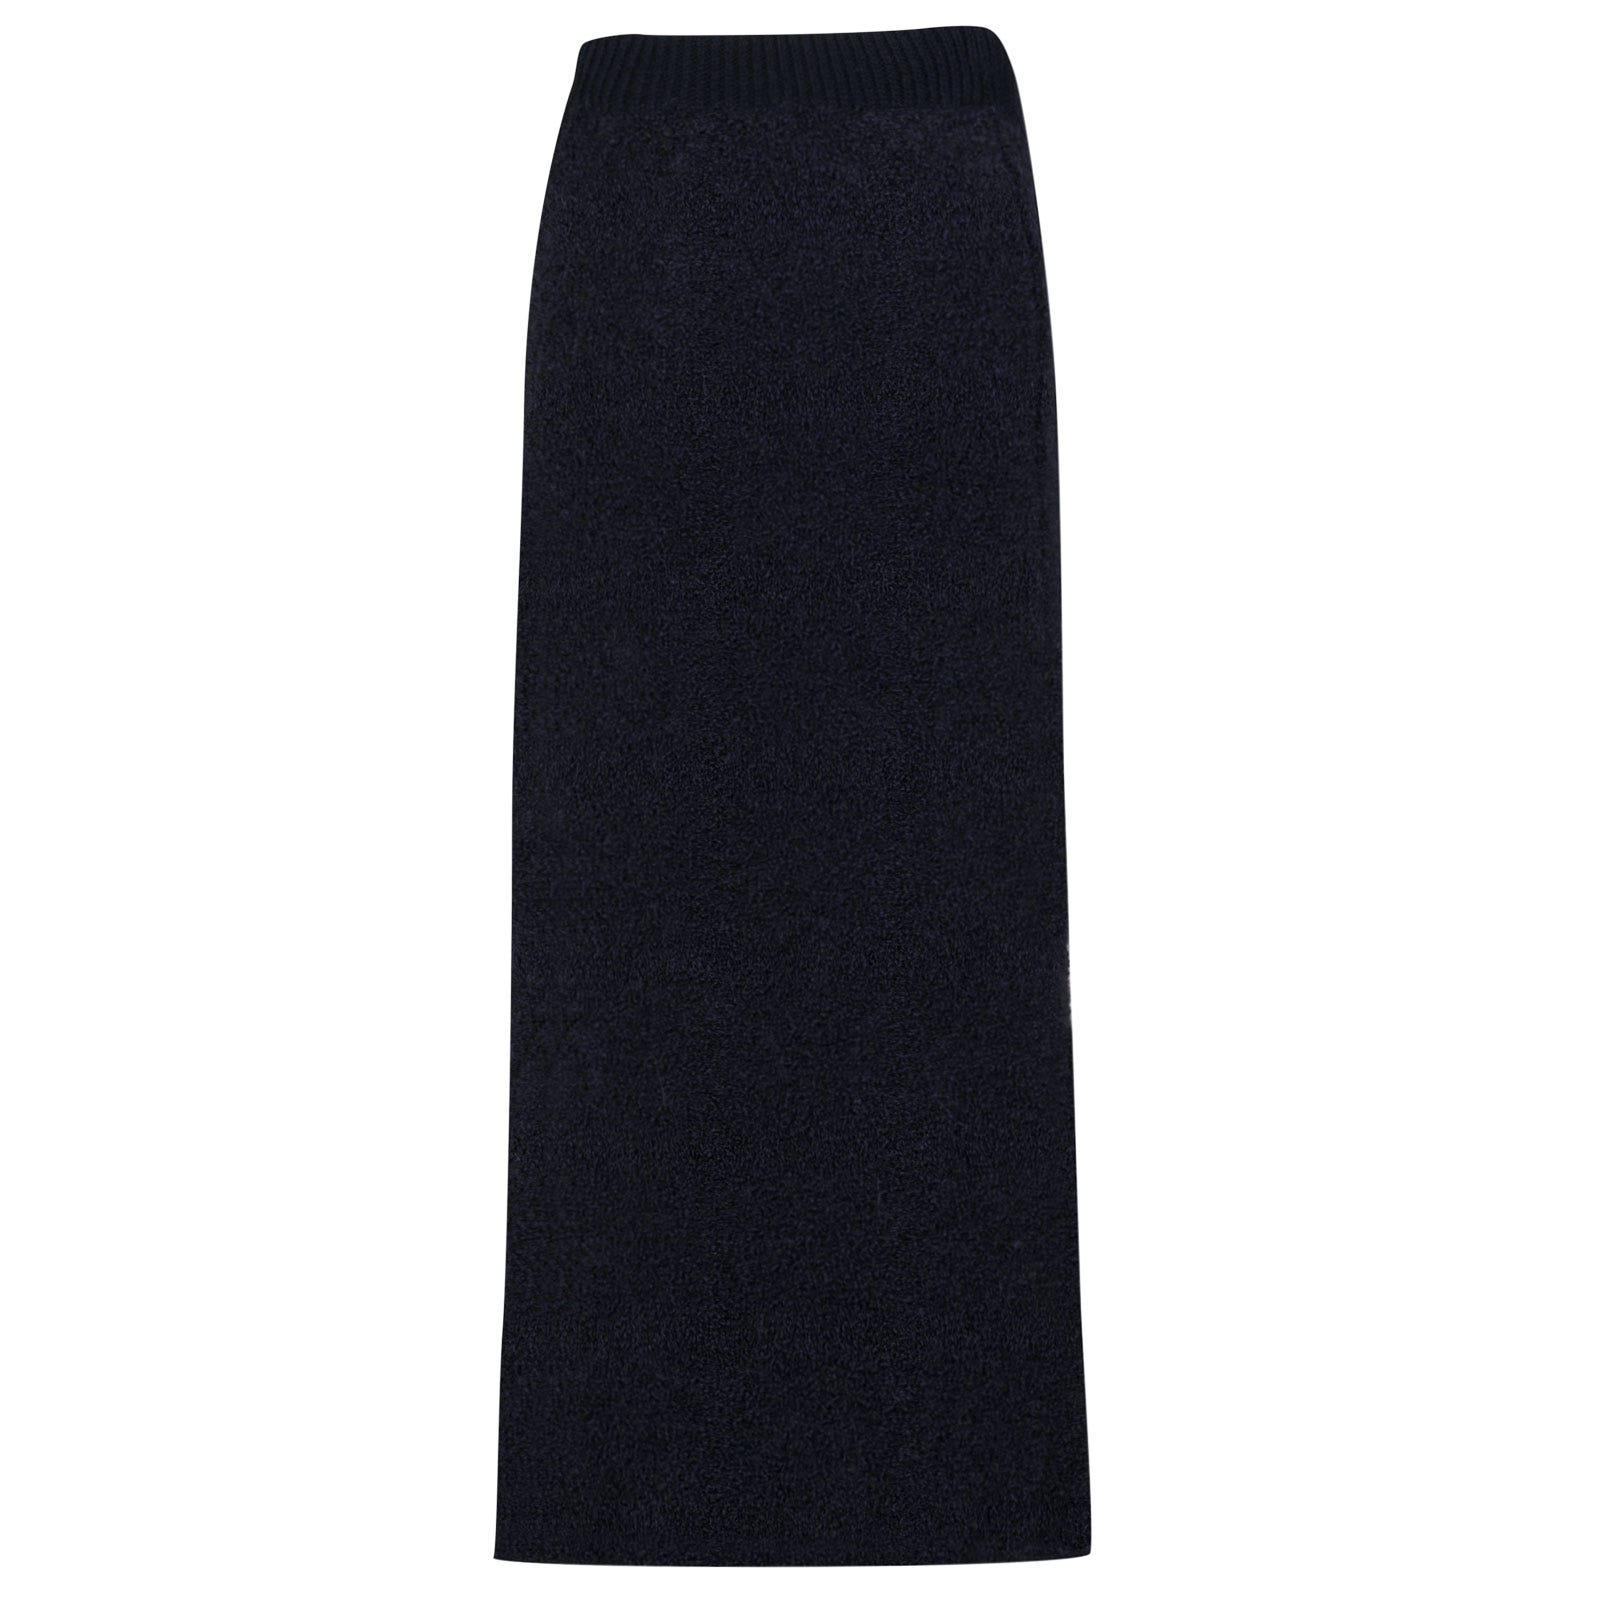 John Smedley Orford Alpaca & Wool Skirt in Midnight-S